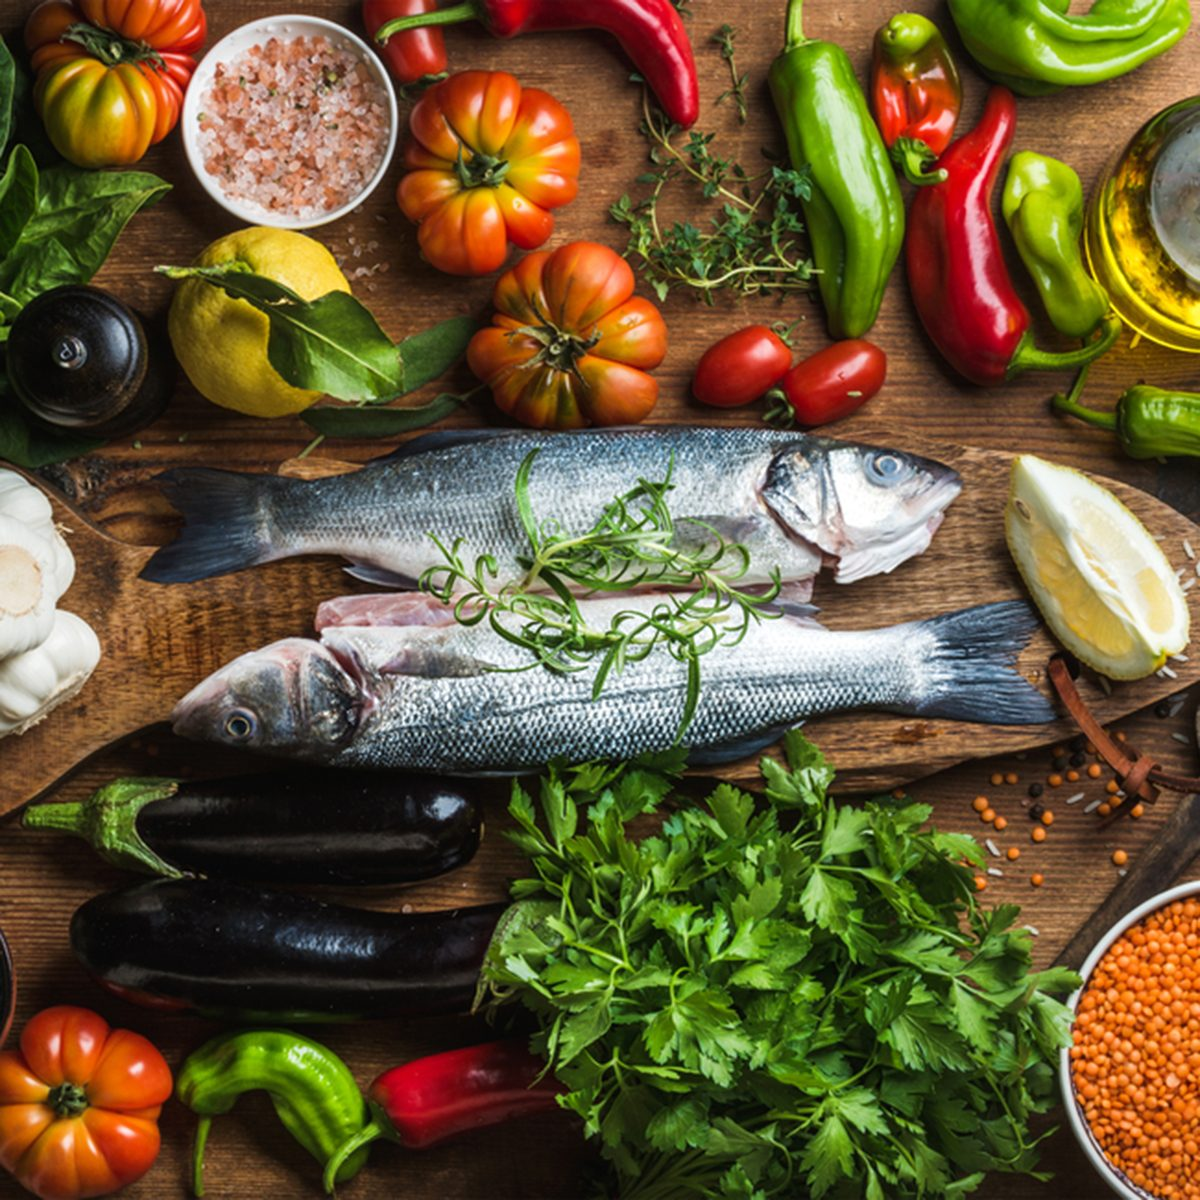 Raw uncooked seabass fish with vegetables, grains, herbs and spices on chopping board over rustic wooden background, top view; Shutterstock ID 415721434